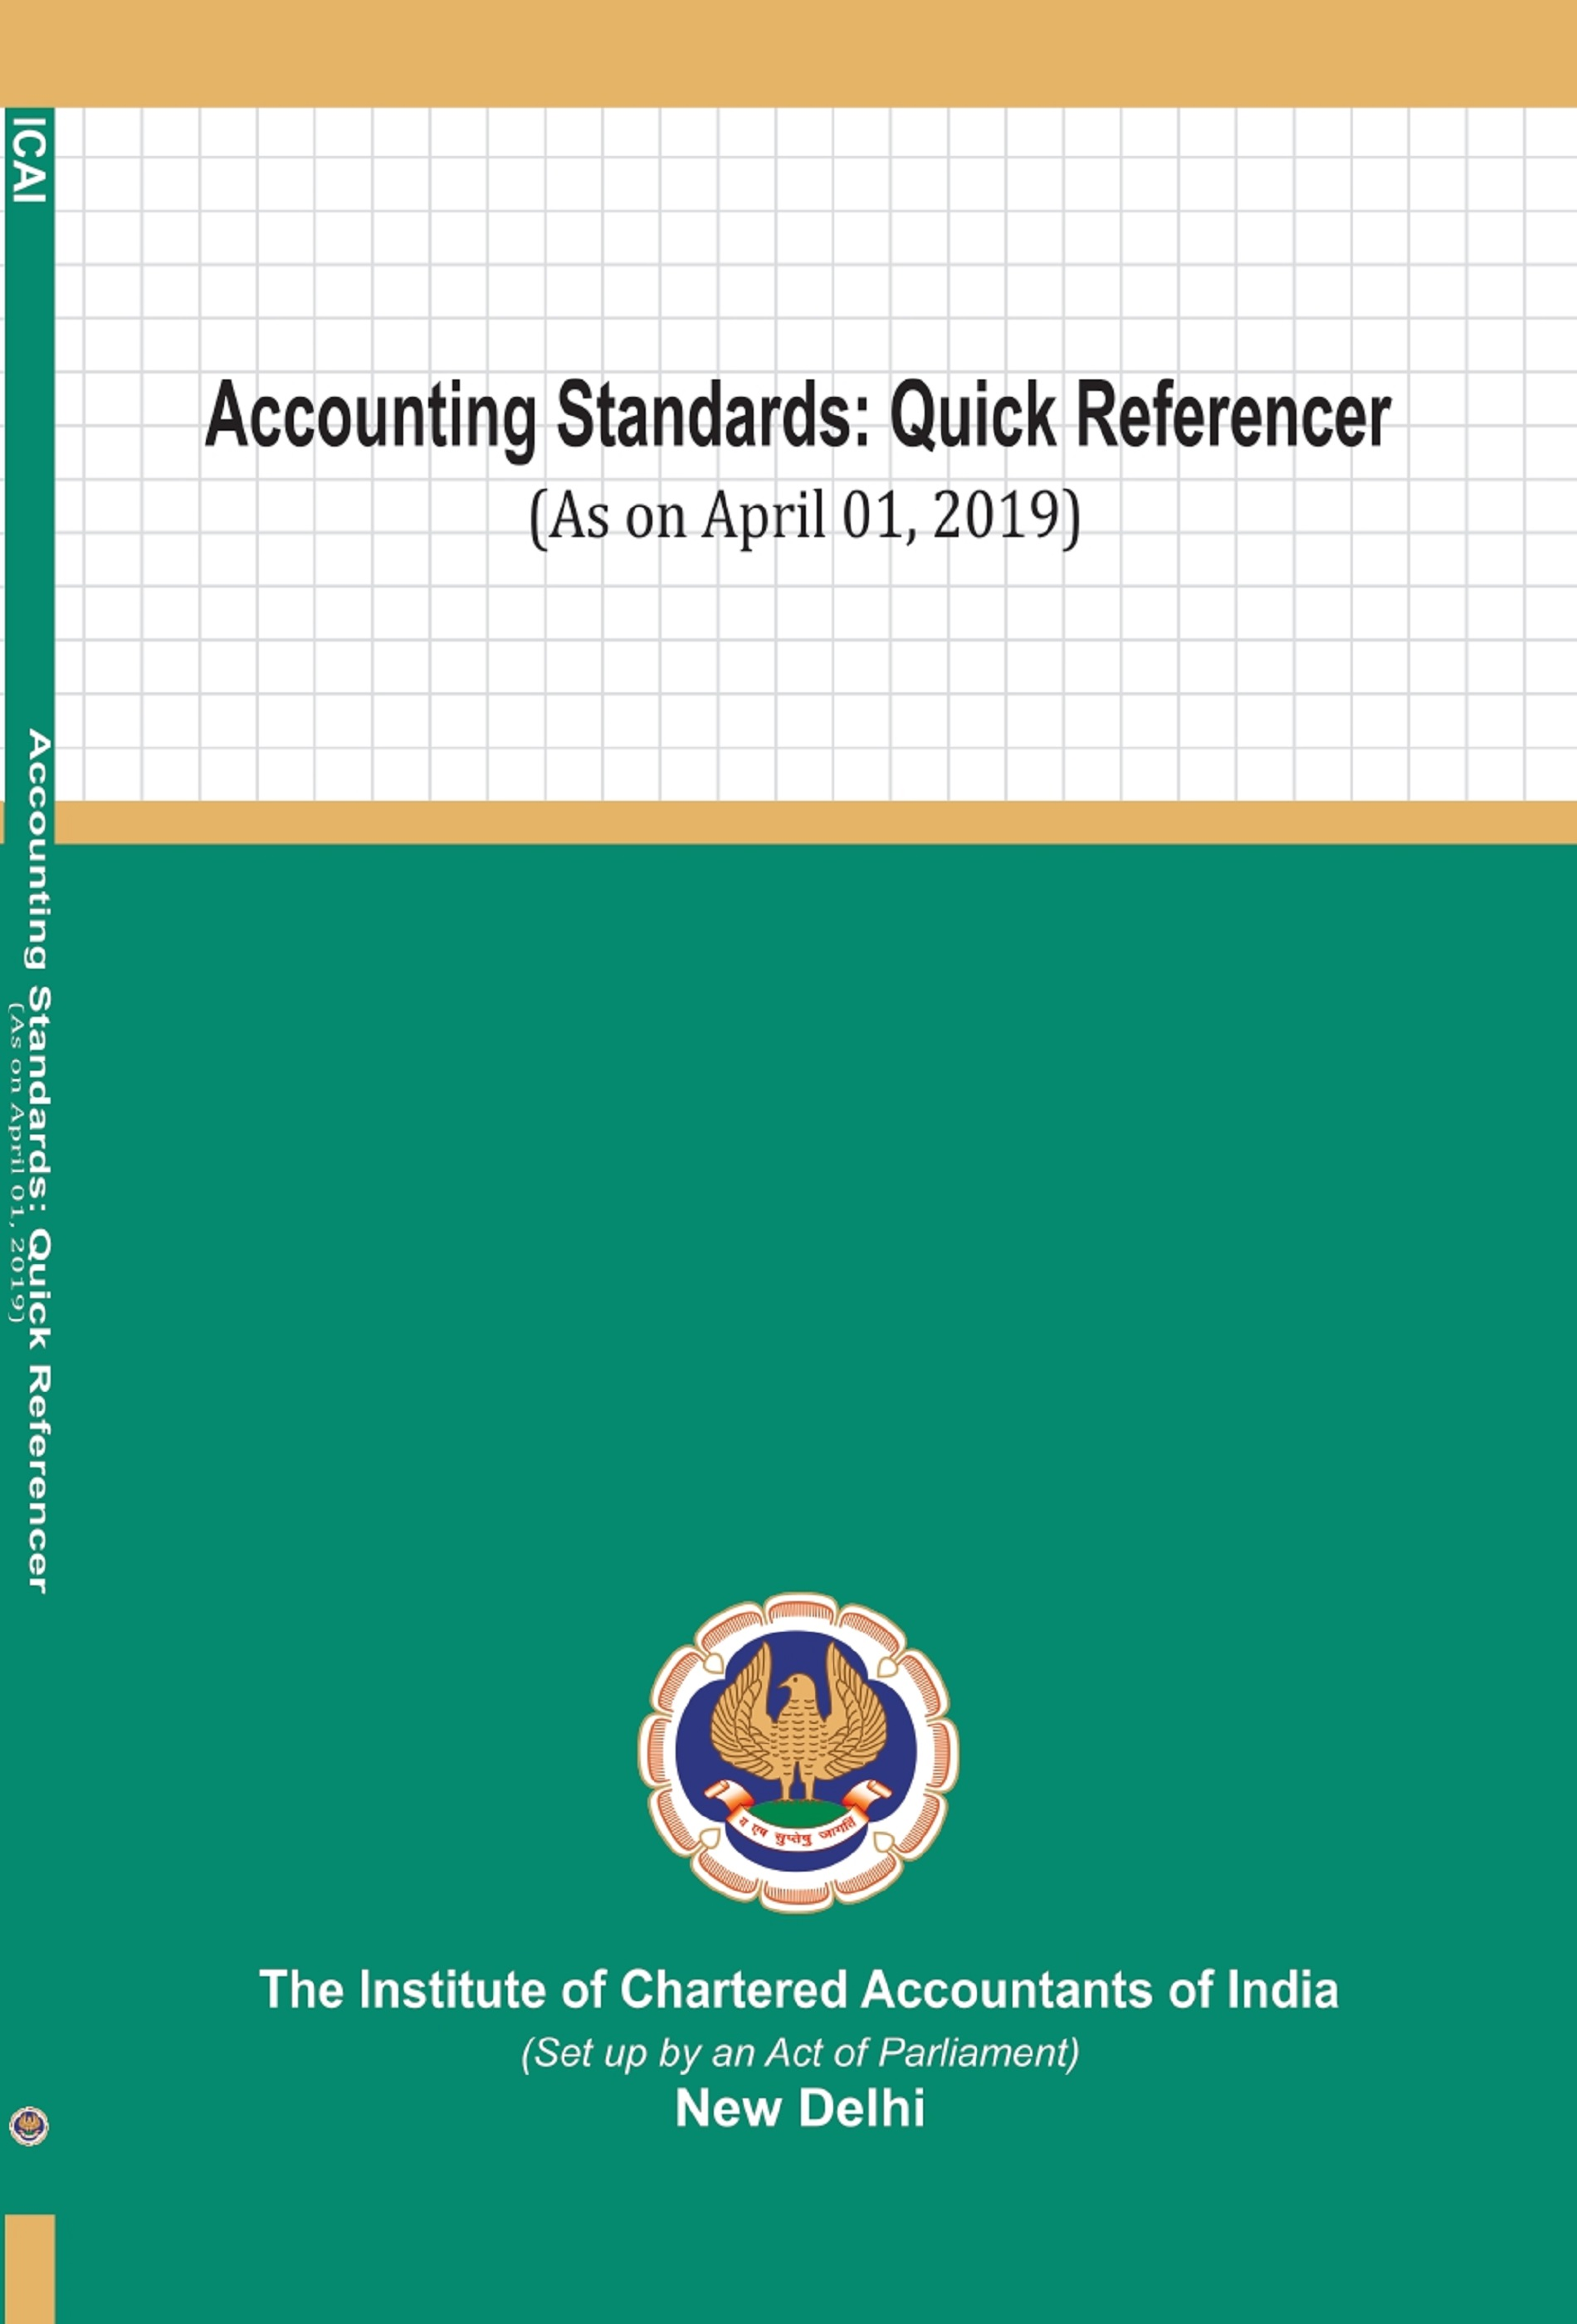 Accounting Standards: Quick Referencer (as on April 01, 2019)